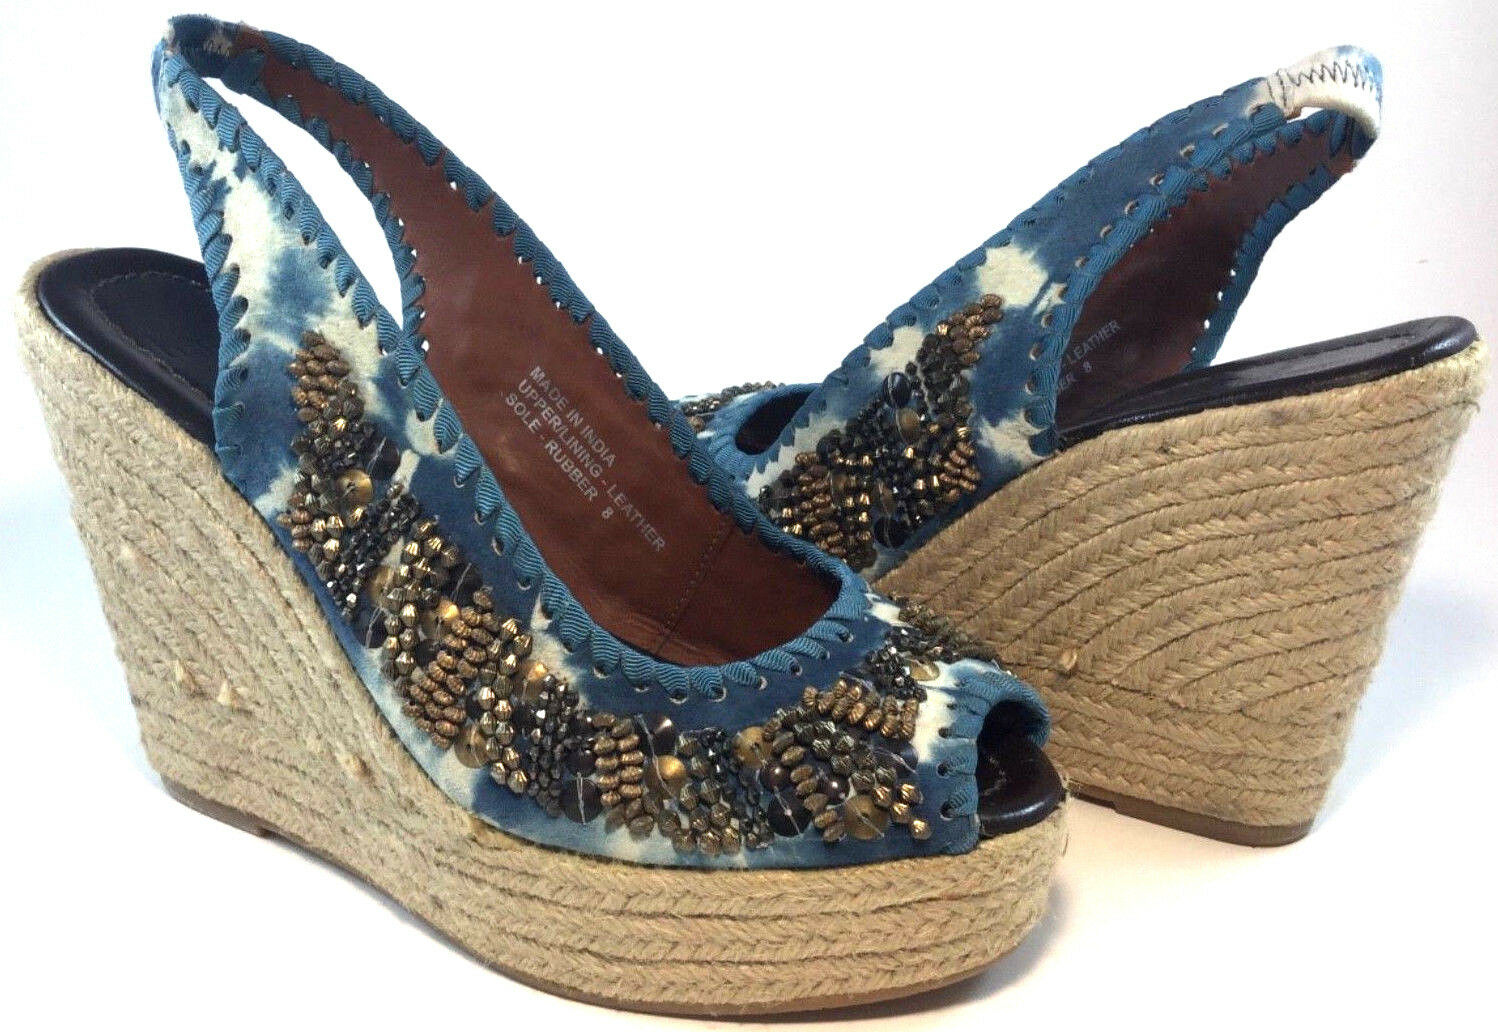 Bacio 61 Dalmine bluee Tie Dye Leather Beaded Peep Toe Platform Wedge Sandal Sz 8